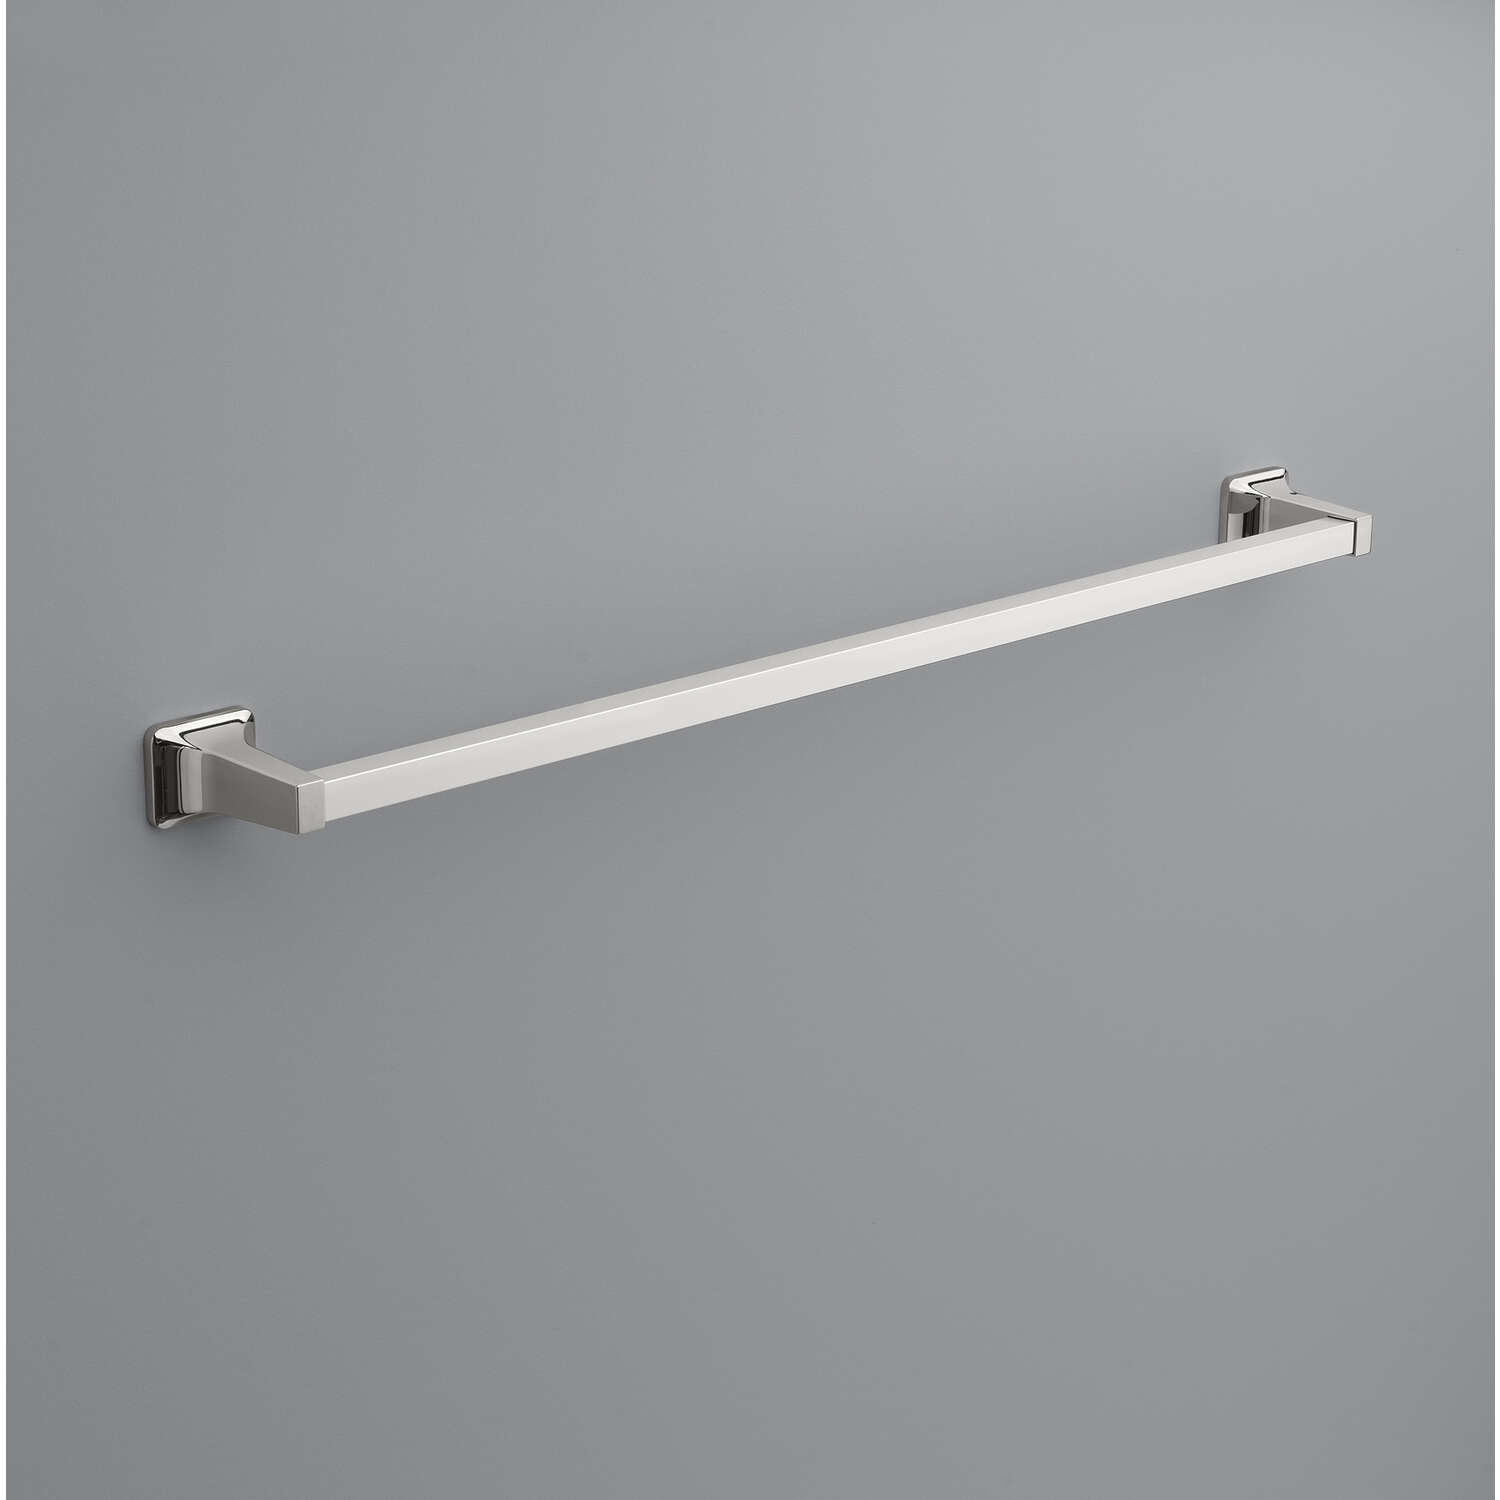 OakBrook  Chrome  Towel Bar  30 in. L Die Cast Zinc